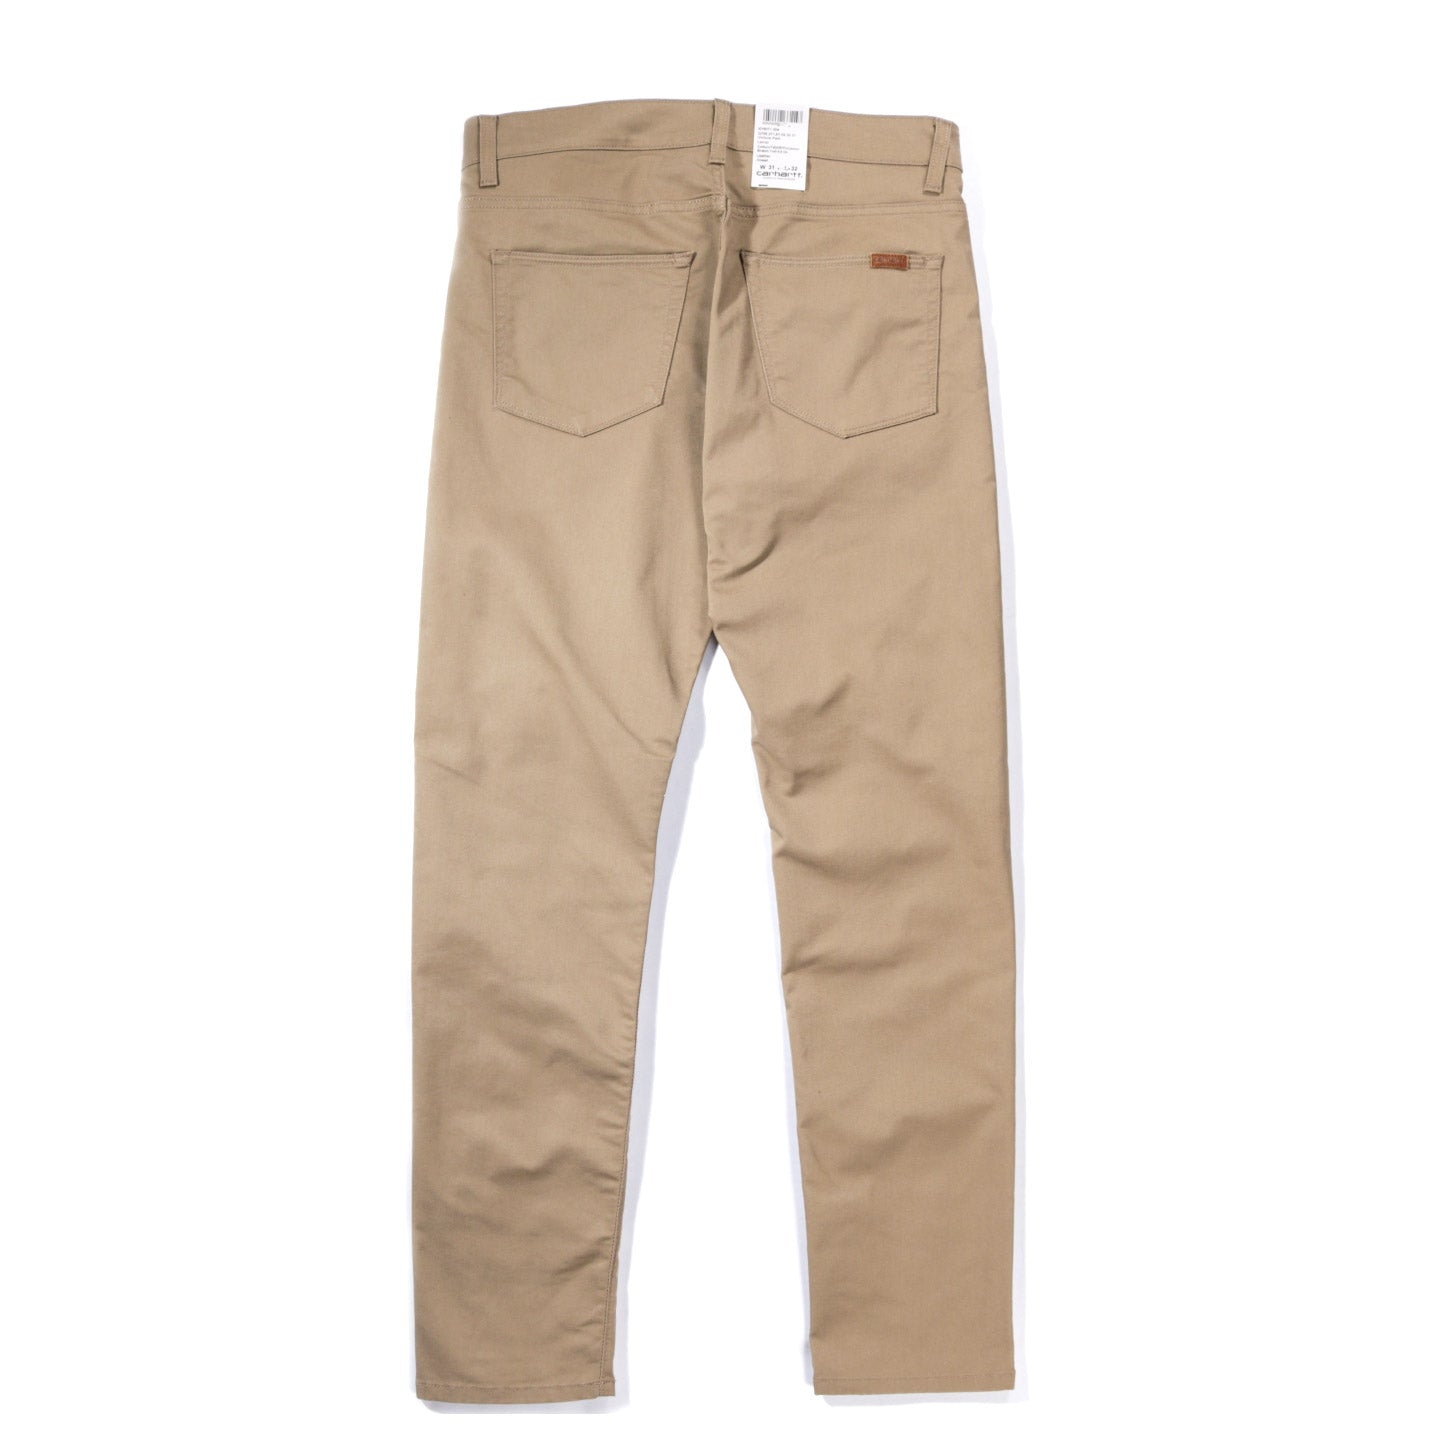 CARHARTT WIP VICIOUS PANT 'LAMAR' STRETCH TWILL LEATHER